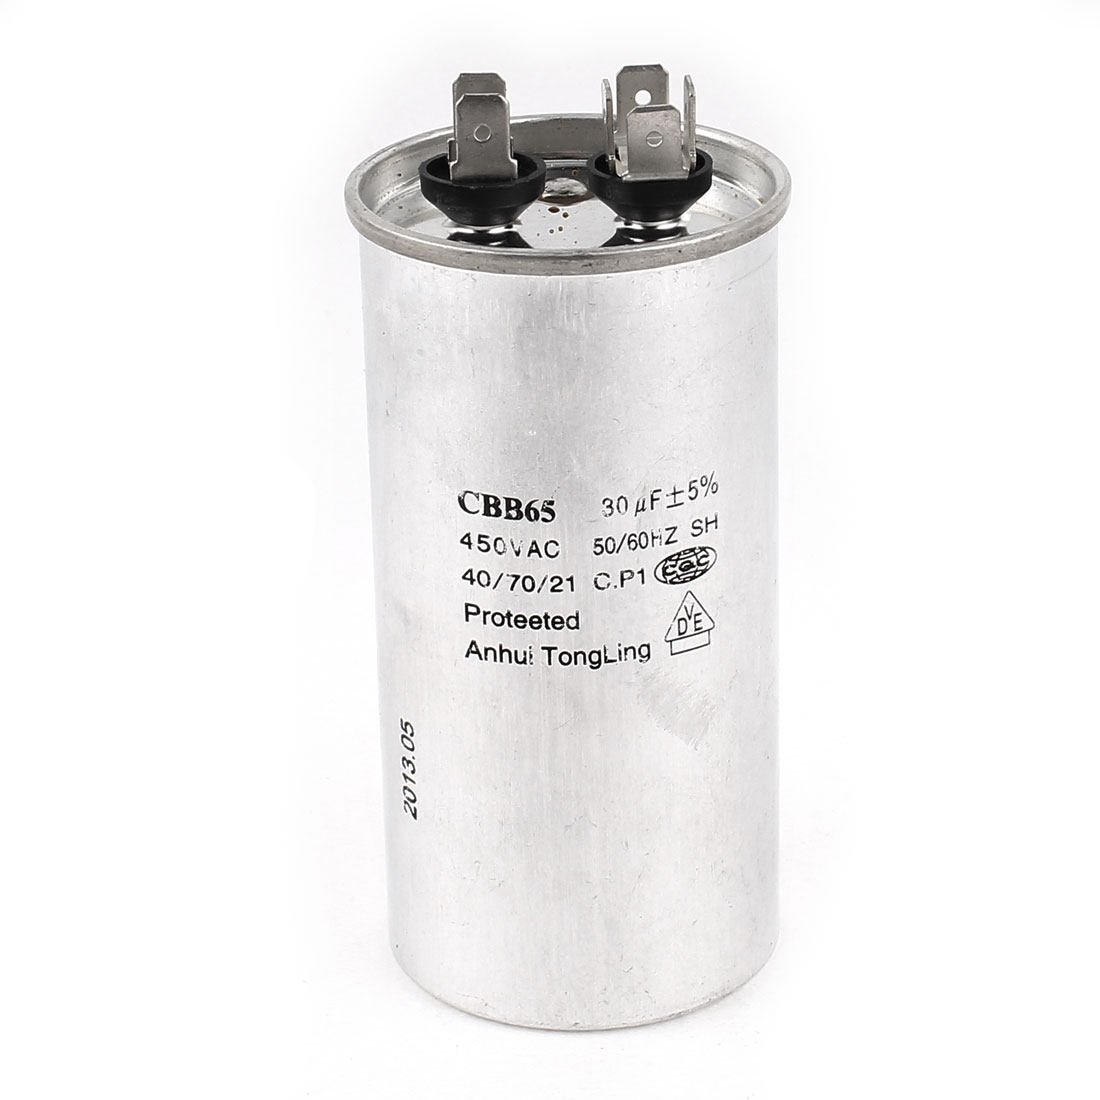 AC 450V 30uF Refrigerator Air Conditioner Motor Running Capacitor CBB65A